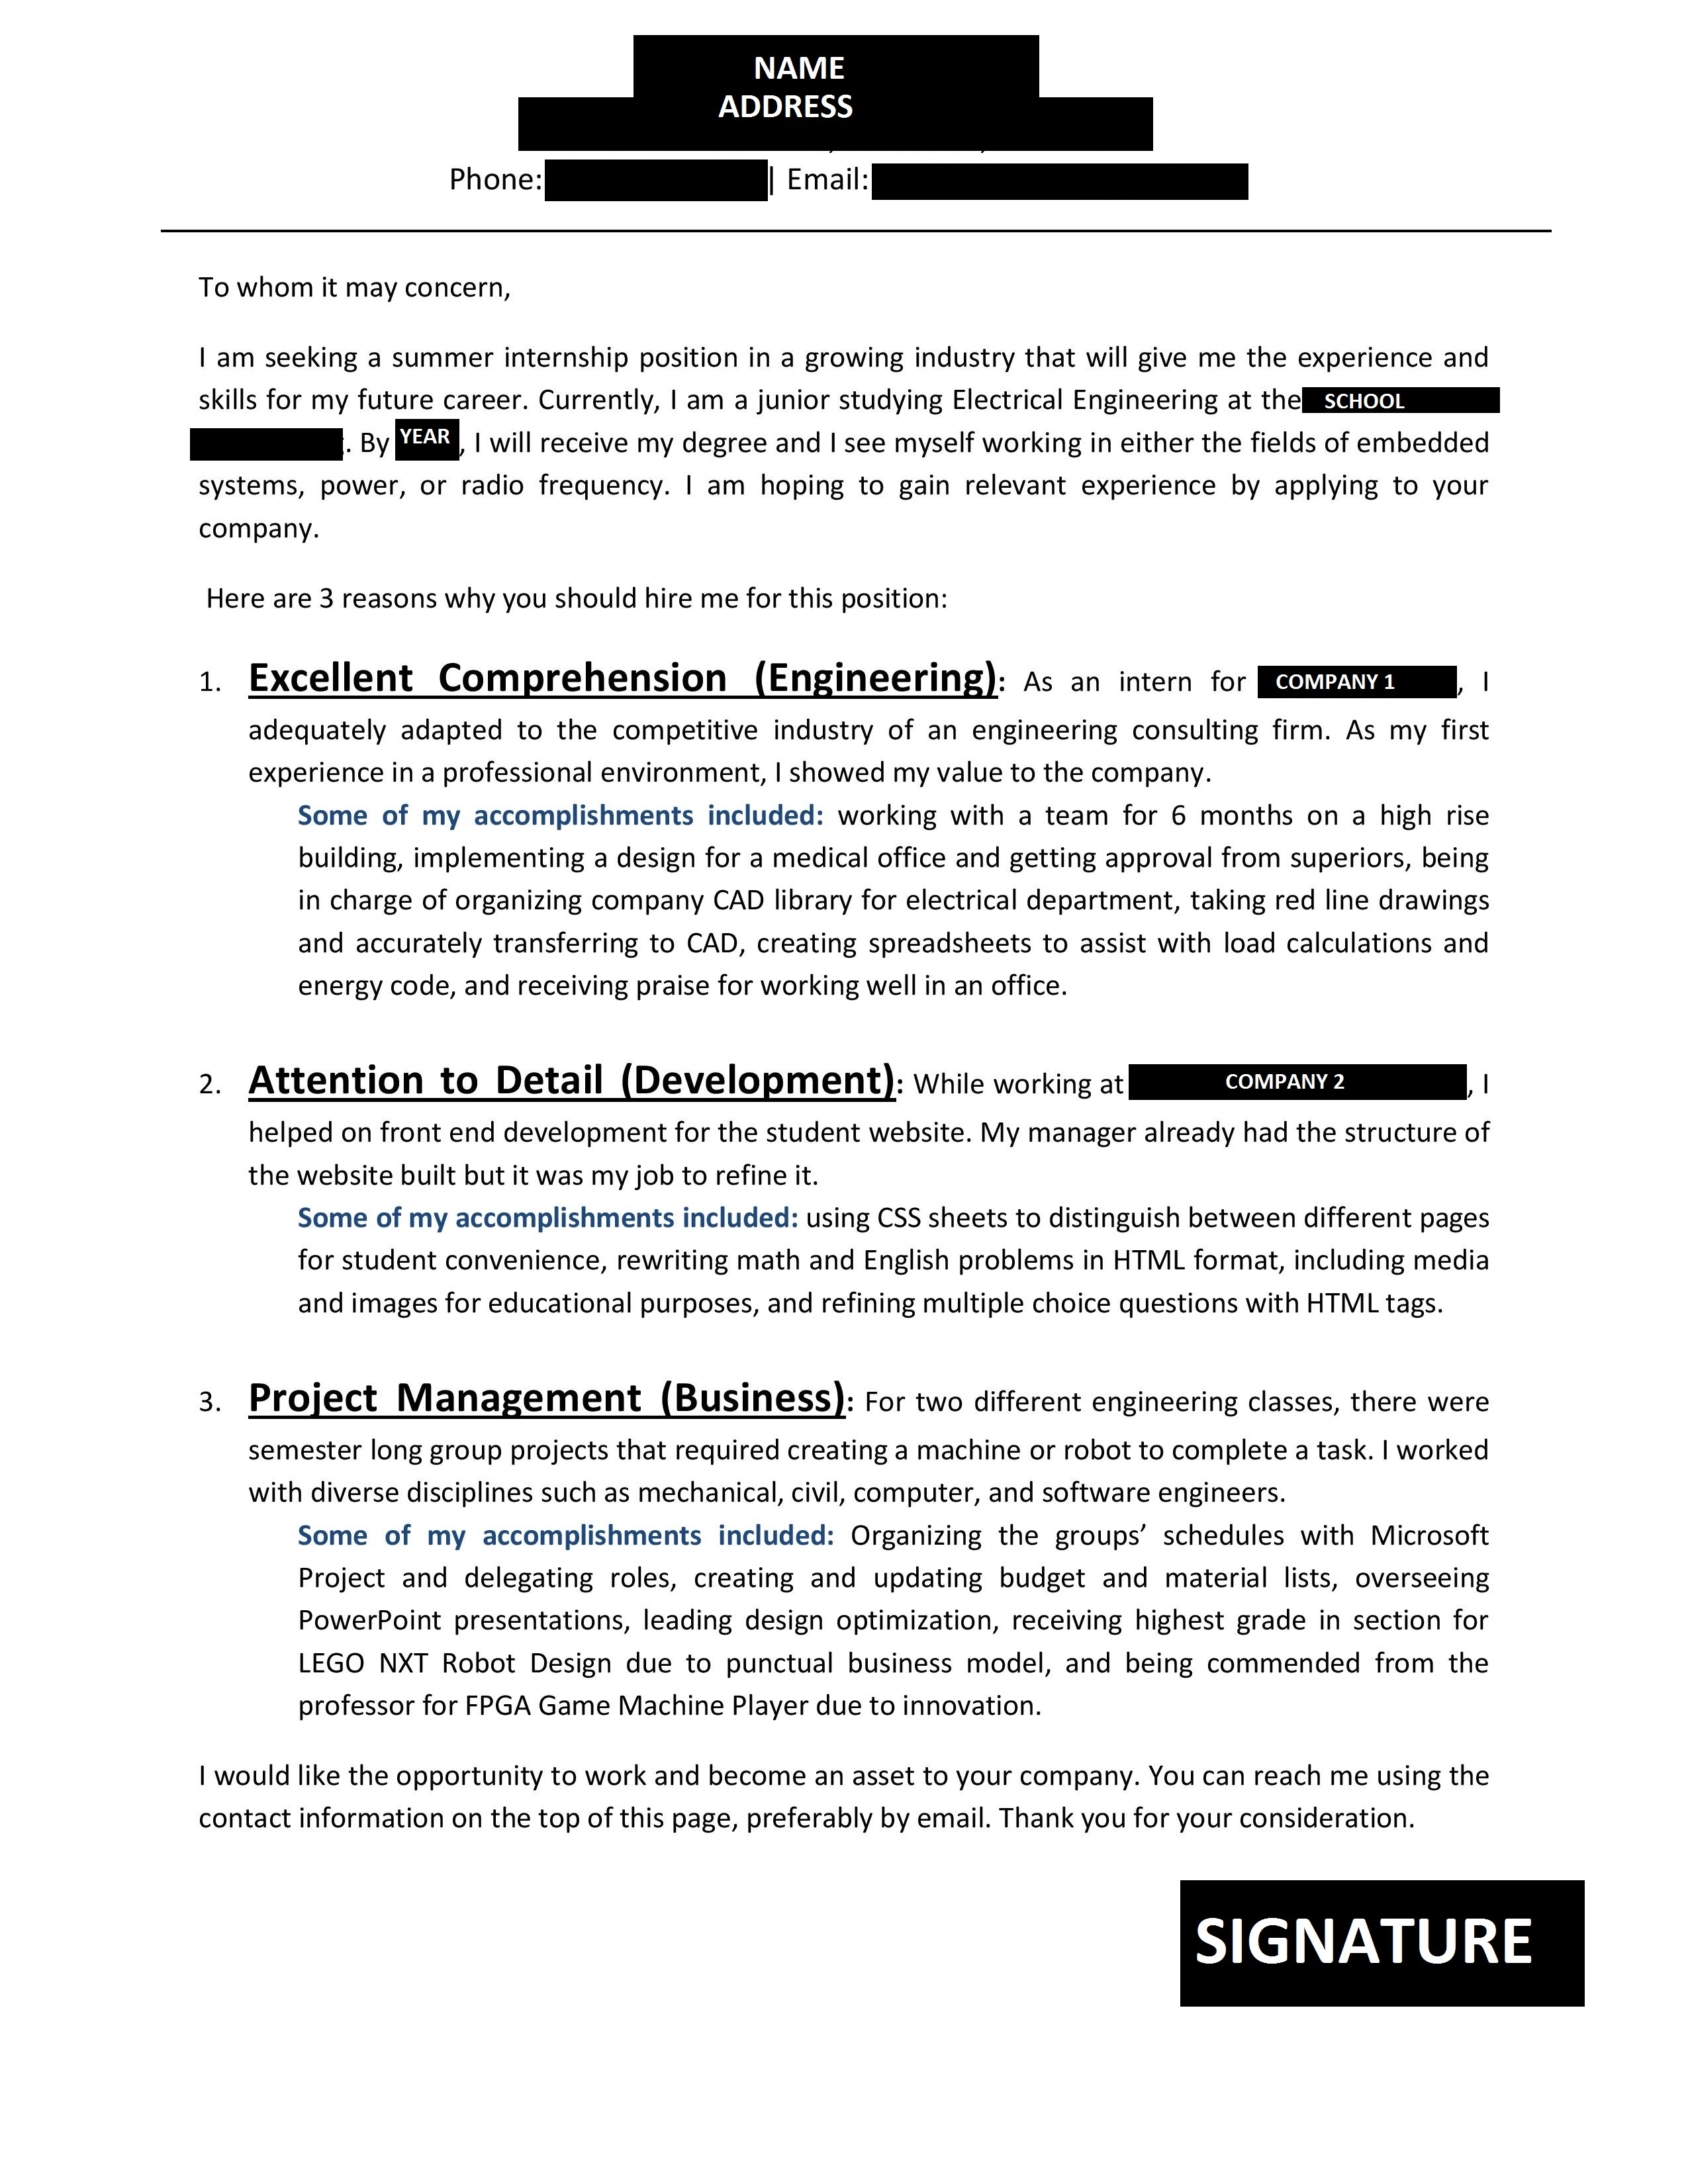 Email After Interview Template Reddit